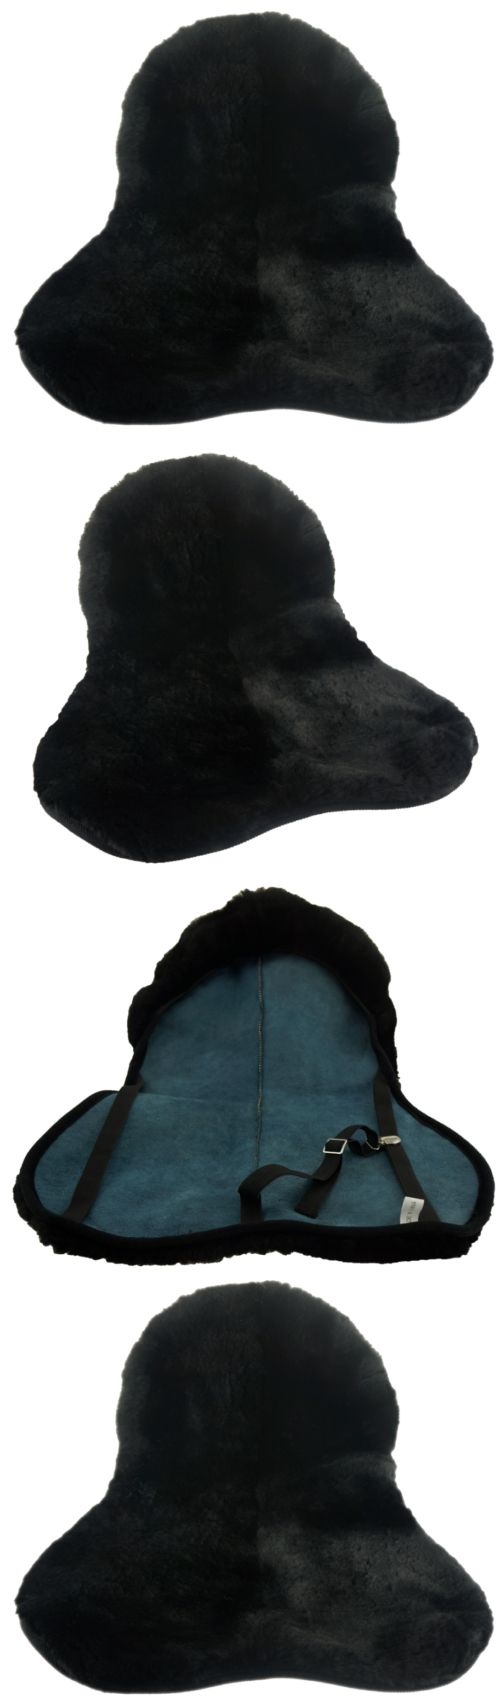 Saddle Covers 179000: Z57 Luxury Merino Sheepskin Saddle Cover Seat Saver Thick Fur Comfort Cosy Pad -> BUY IT NOW ONLY: $49.99 on eBay!